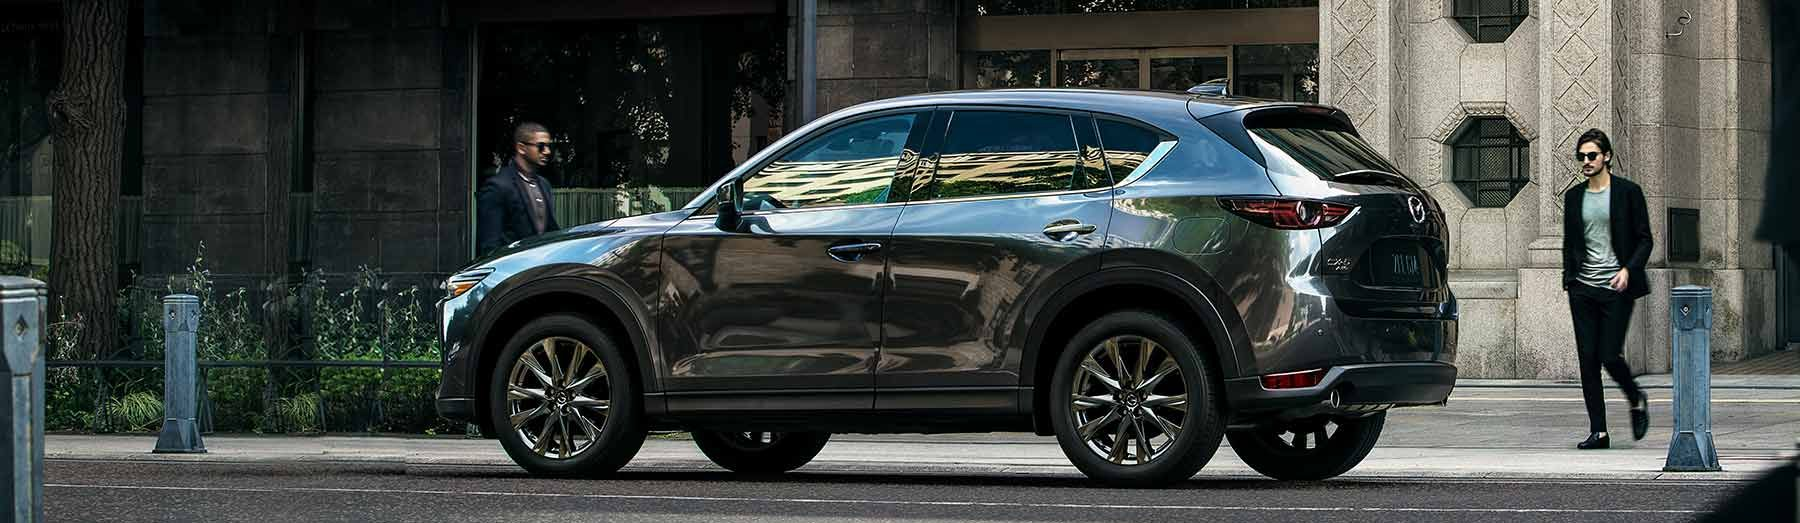 2019 Mazda CX-5 Leasing near Bristol, TN